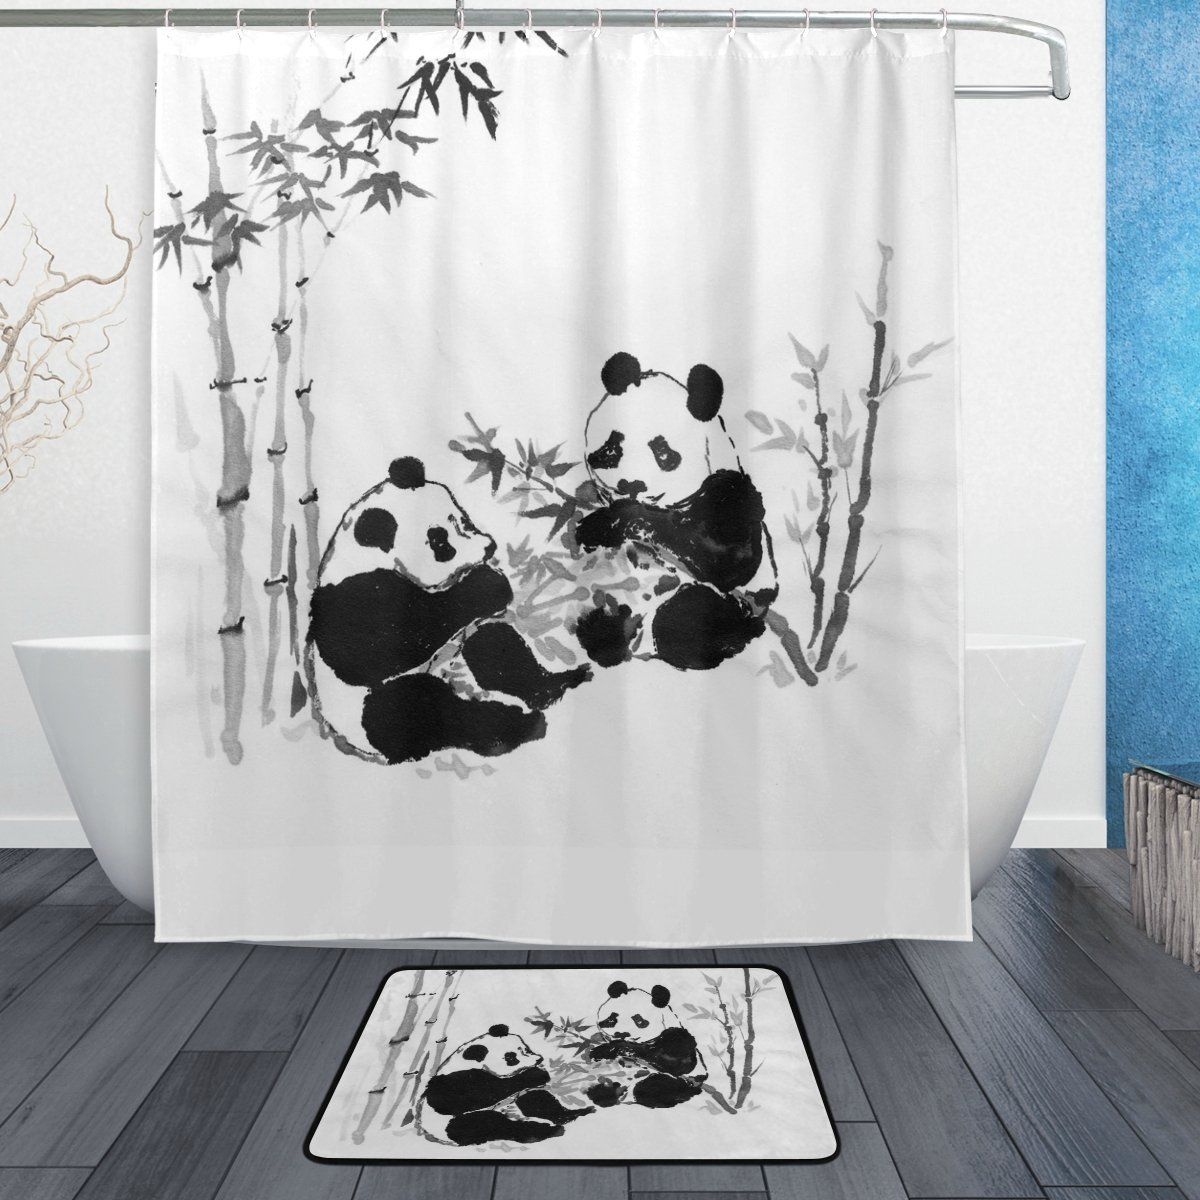 Panda Bamboo Shower Curtain and Mat Set, Chinese Painting Art Waterproof Fabric Bathroom Curtain